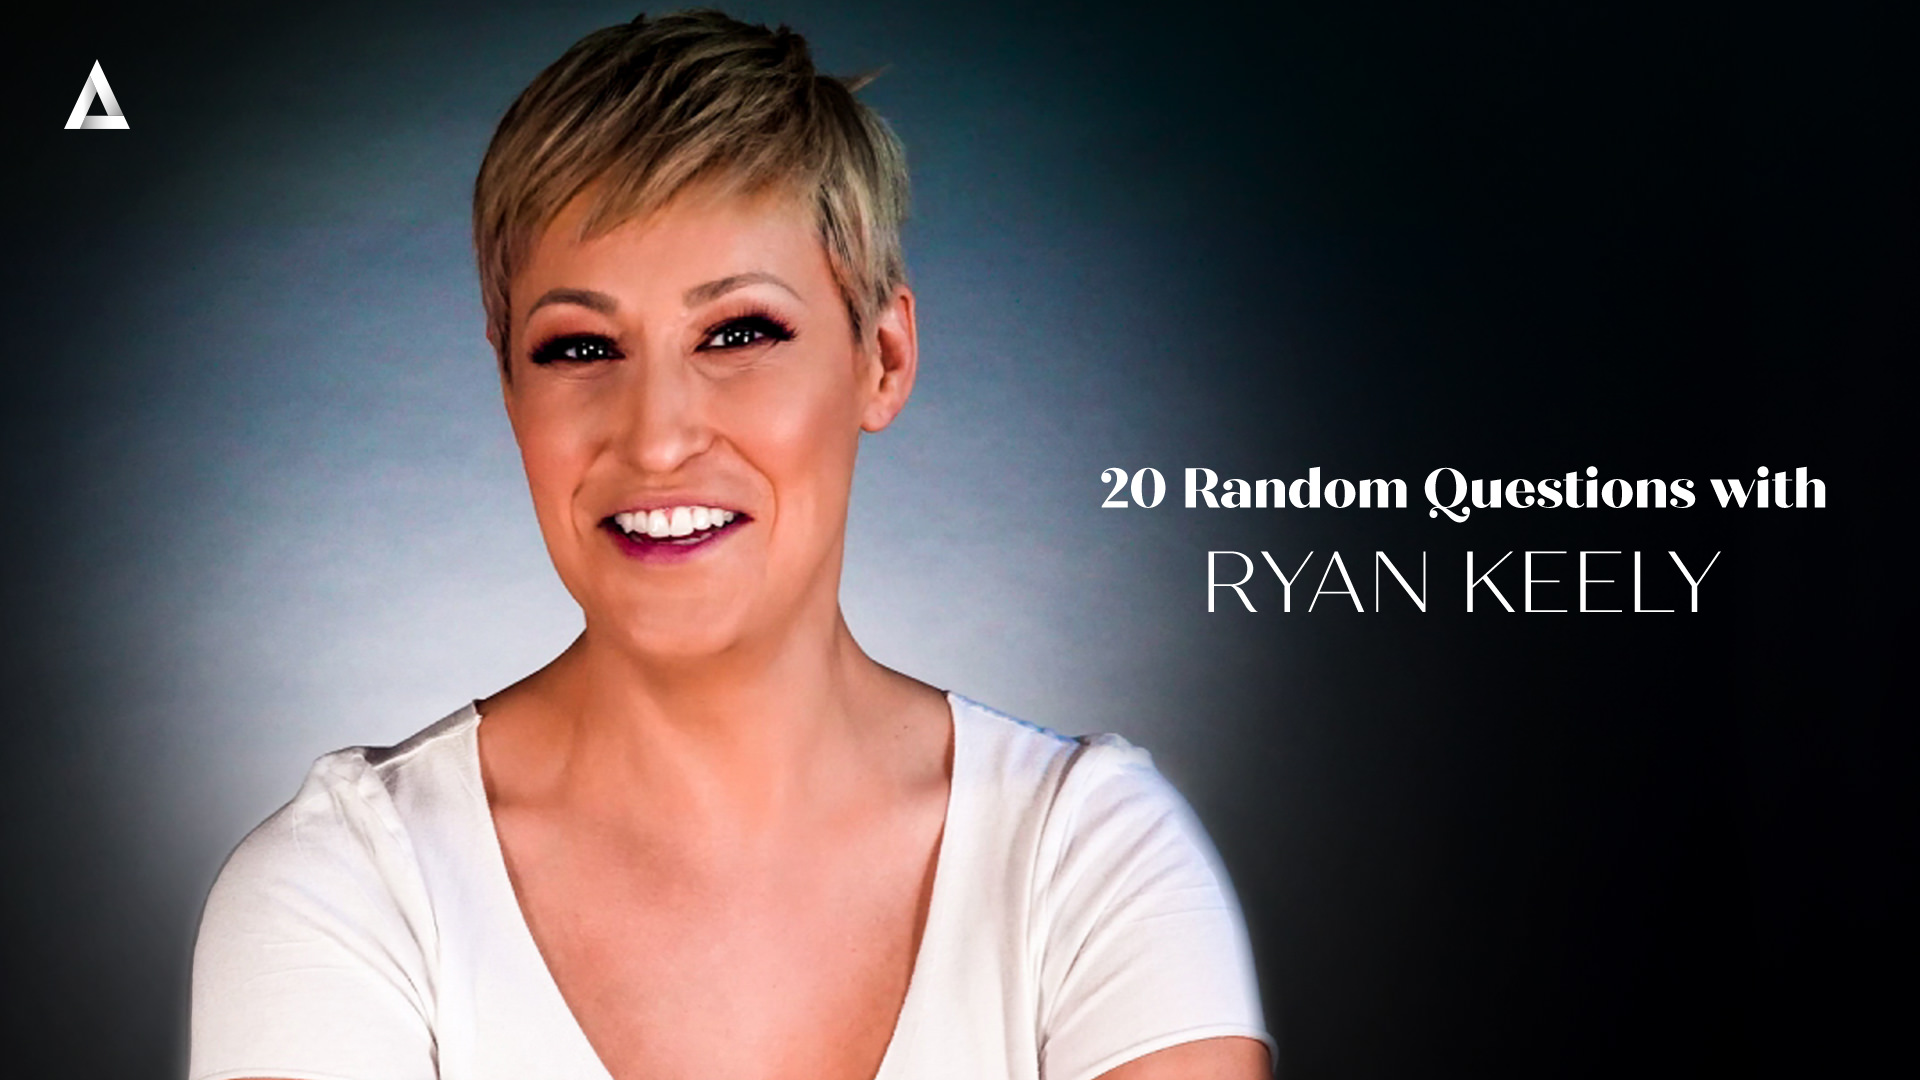 20 Random Questions with Ryan Keely - Ryan Keely 1